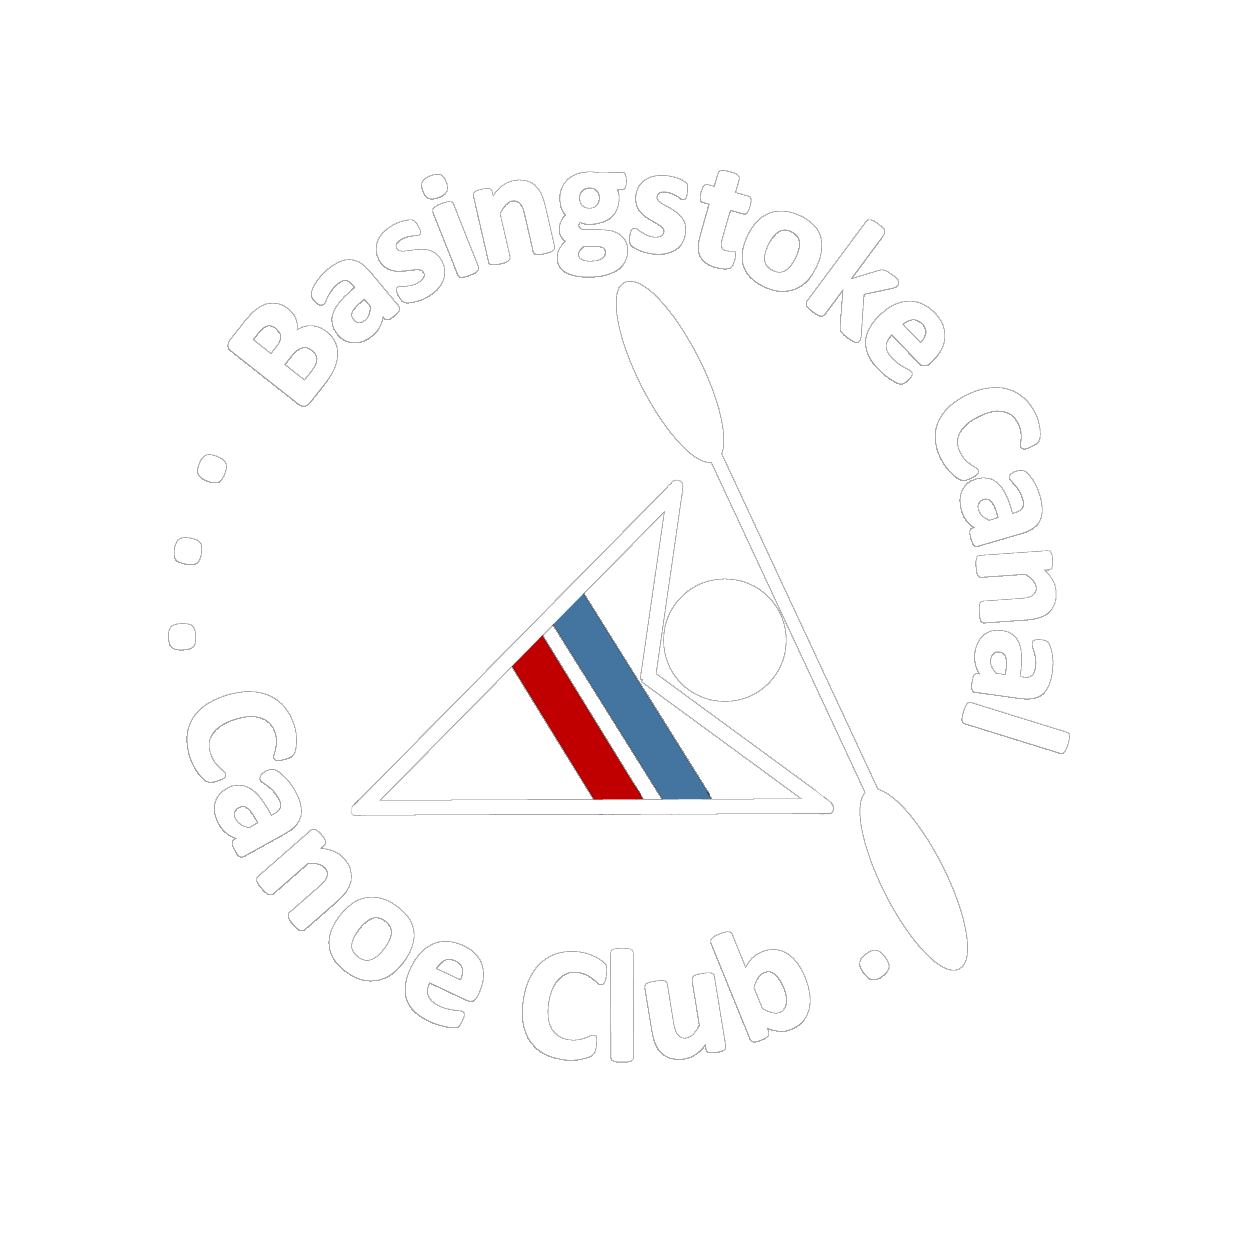 The Basingstoke Canal Canoe Club is a family club offering a broad base of disciplines within canoeing and kayaking. The club encourages paddling for all ages and abilities.